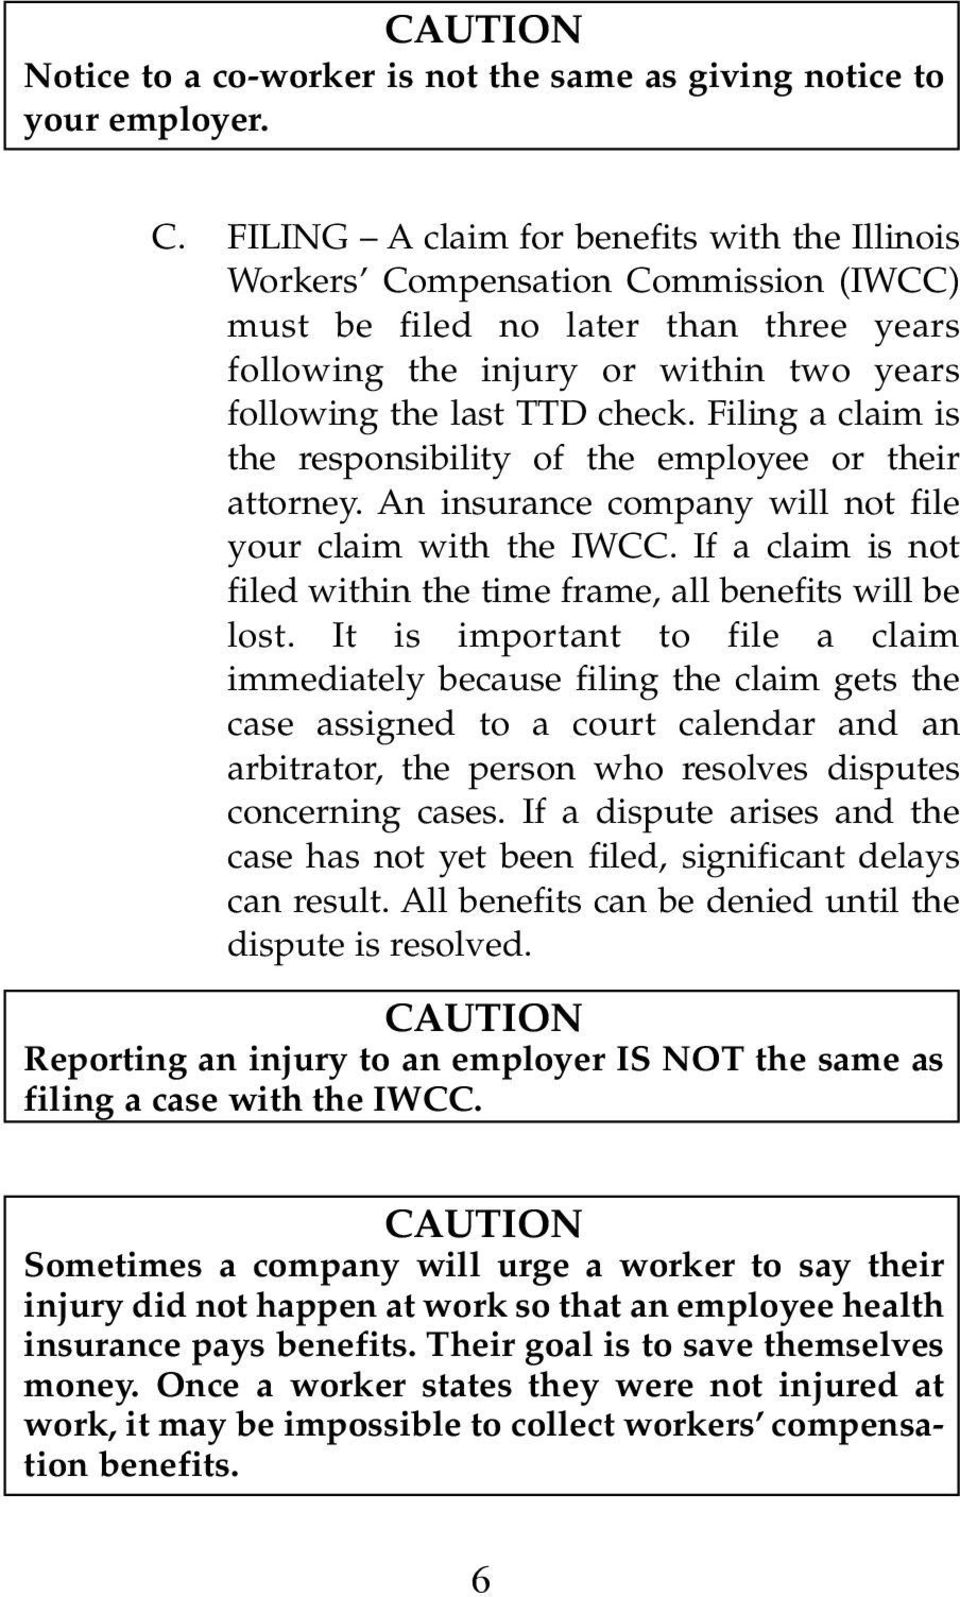 Filing a claim is the responsibility of the employee or their attorney. An insurance company will not file your claim with the IWCC.